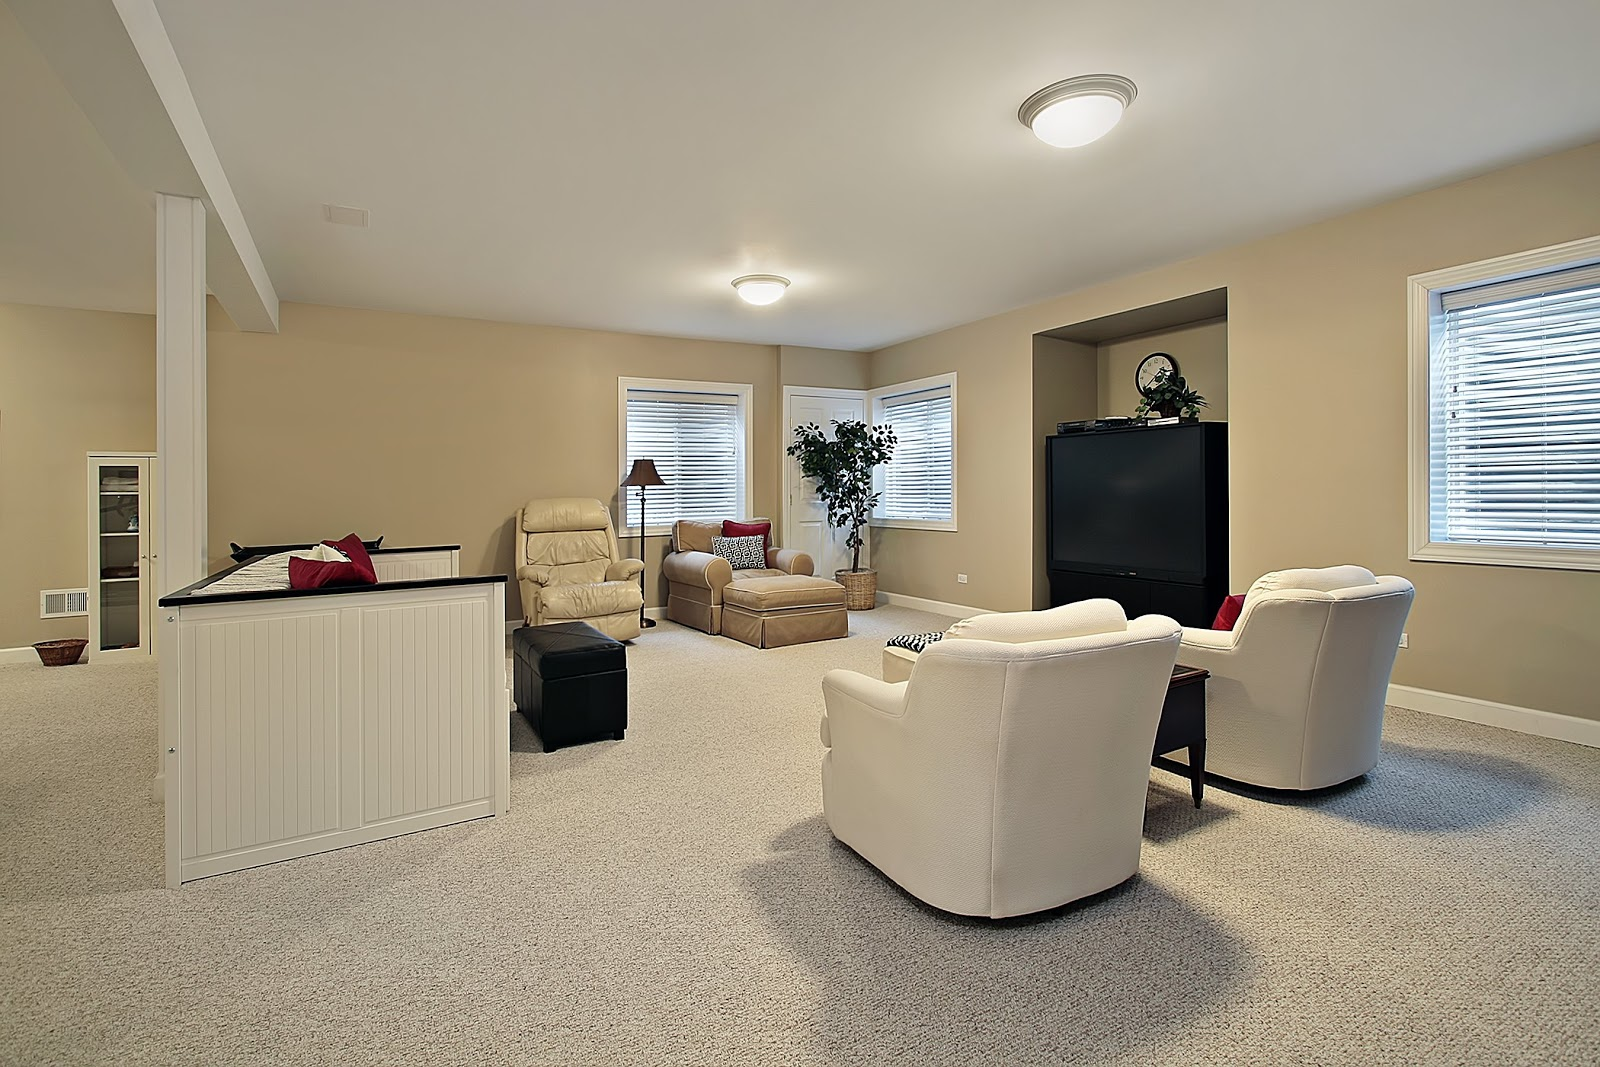 A fully finished basement used as a recreational area with basement windows